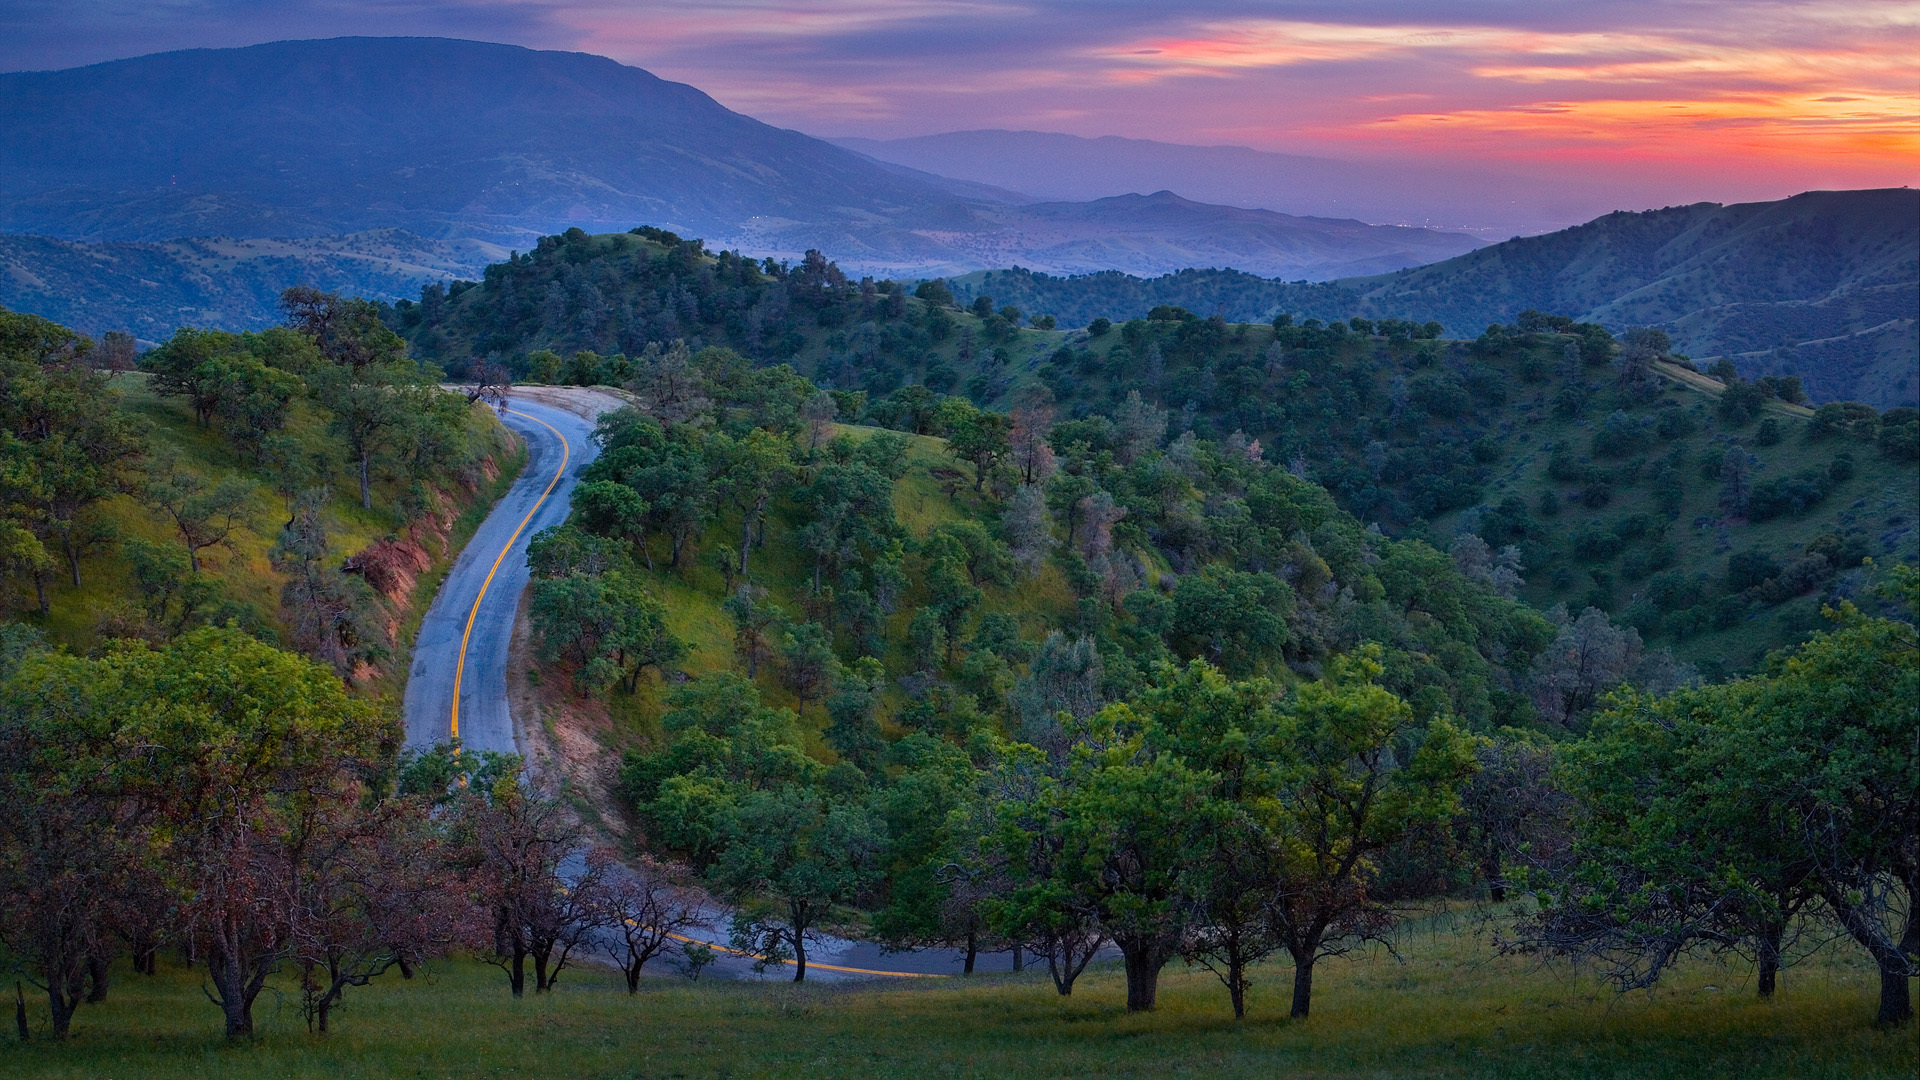 world roads nature landscapes trees forest hills mountains sky clouds sunset sunrise